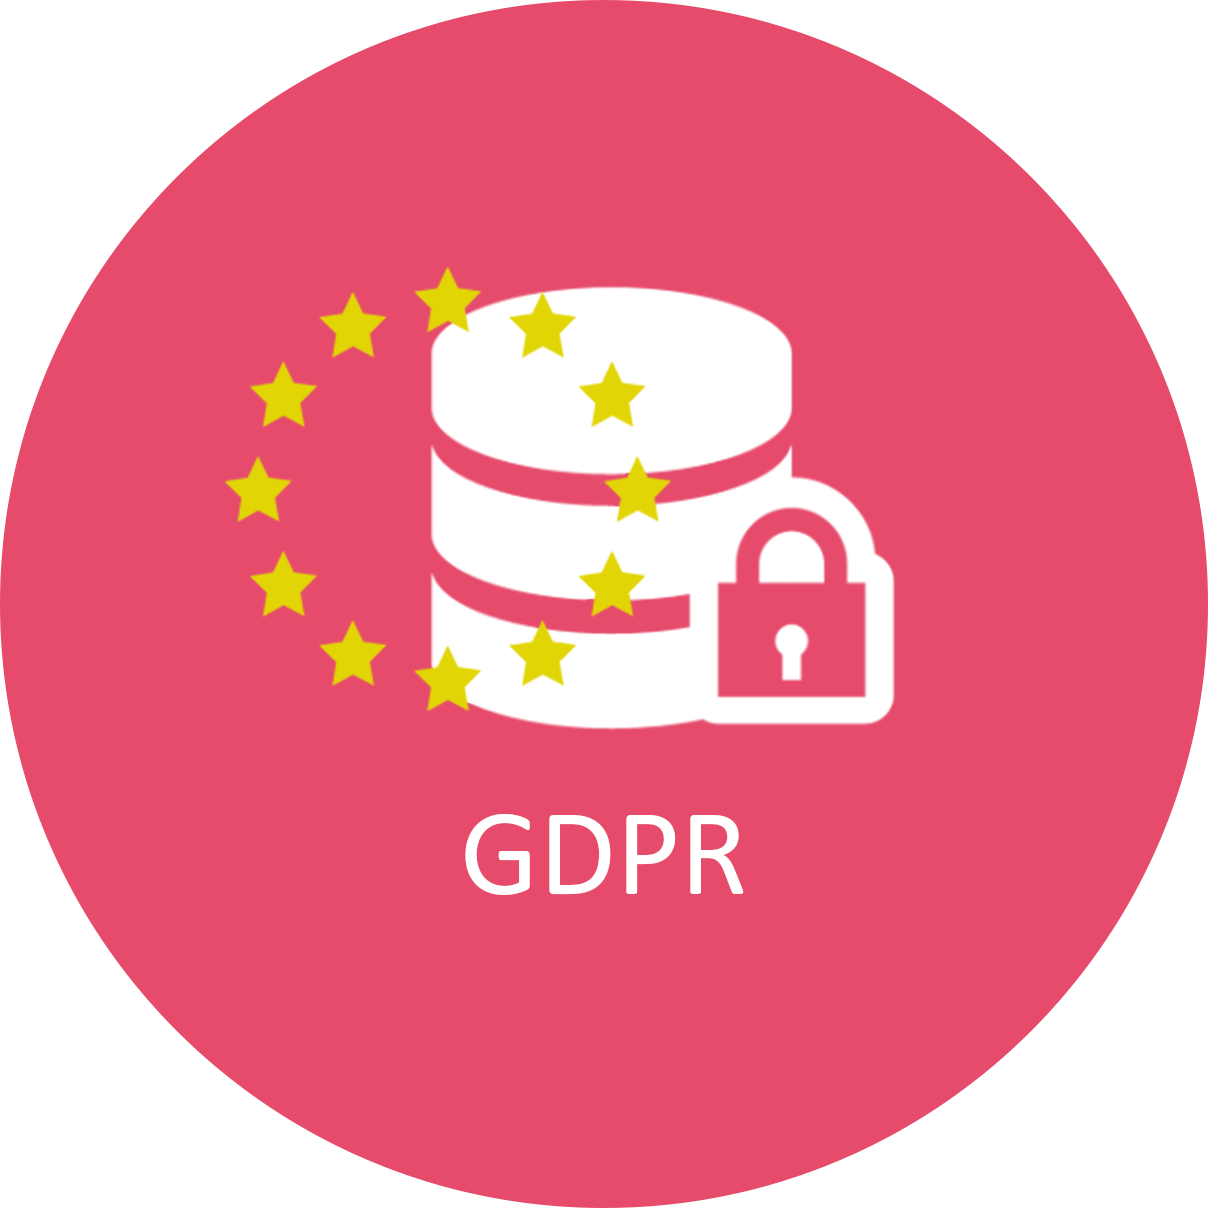 GDPR Database Azure Power BI Business Intelligence Analysis Services Reporting Integration SSMS SSIS SSAS SSRS Aleson ITC SQL Server Valencia Madrid Barcelona Spain España